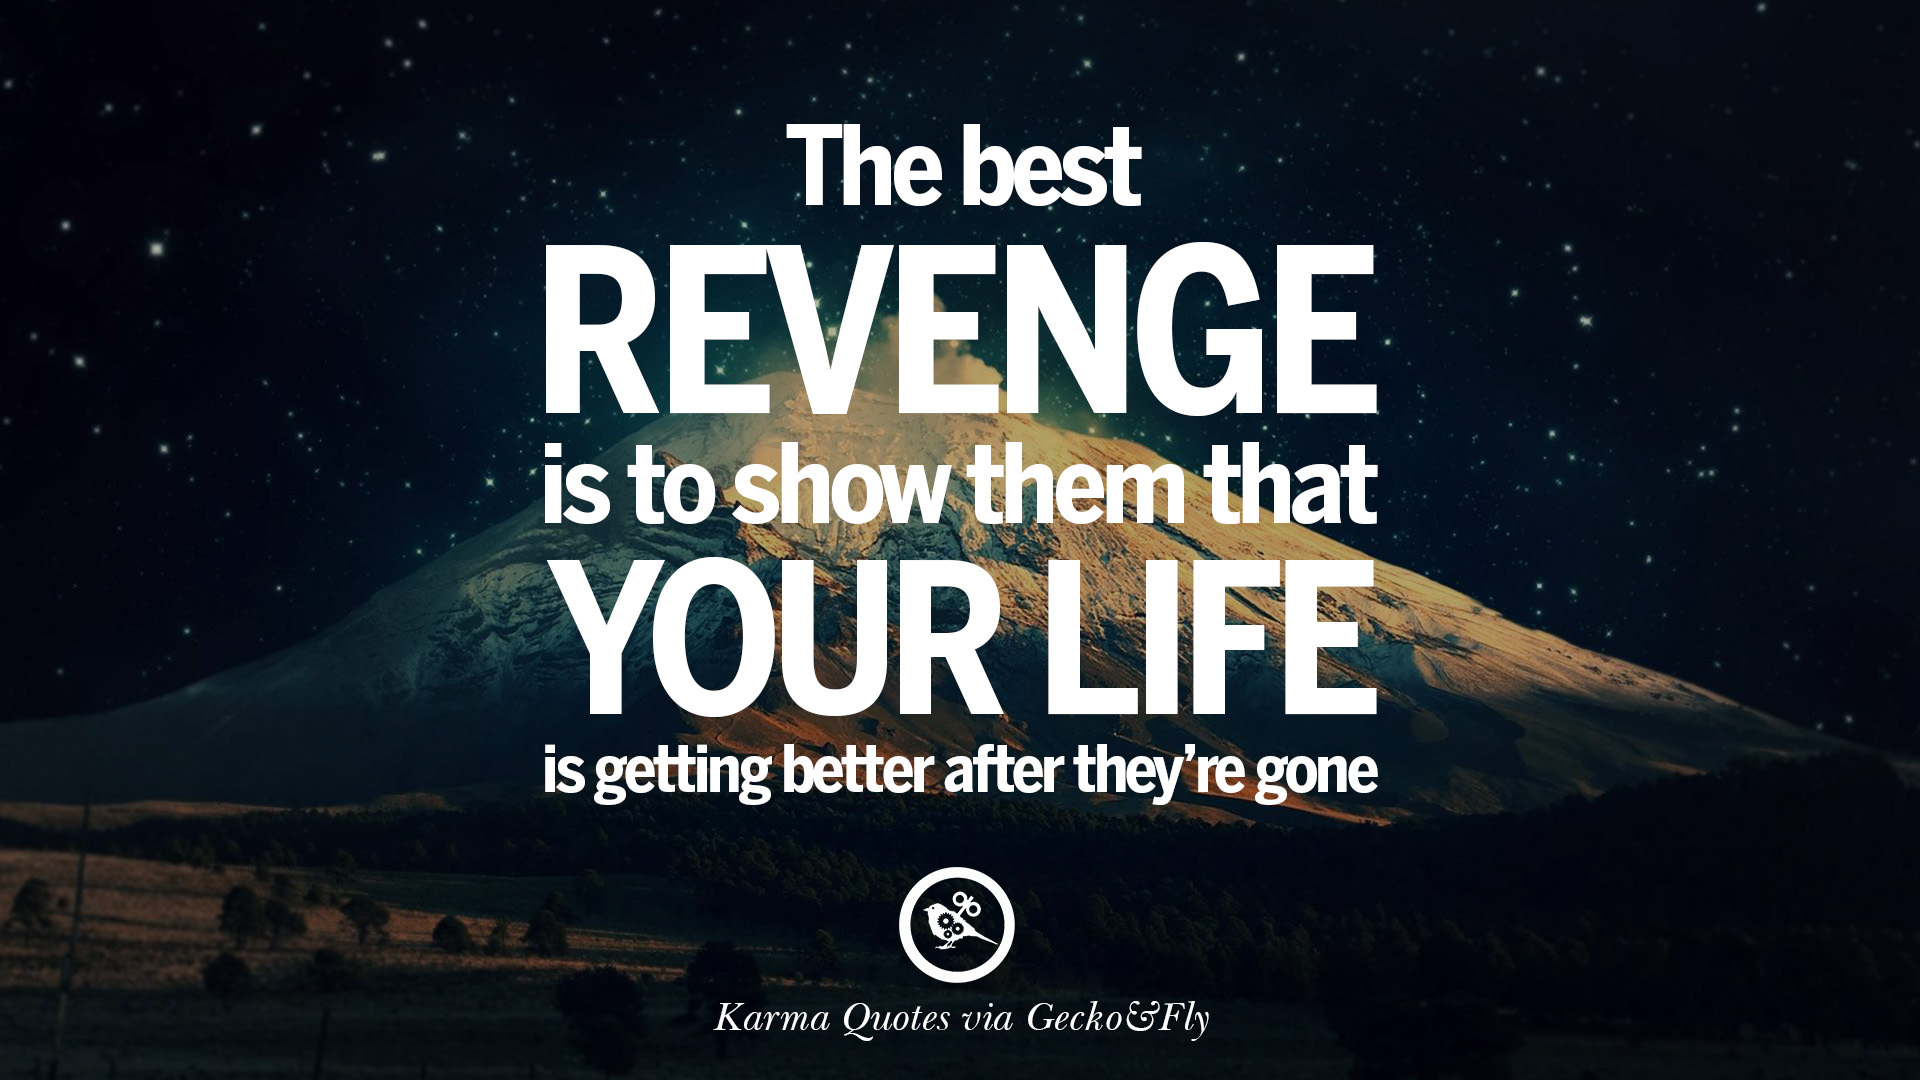 Funny Revenge Quotes On Love : ... Quotes on Relationship, Revenge and Life best tumblr quotes instagram